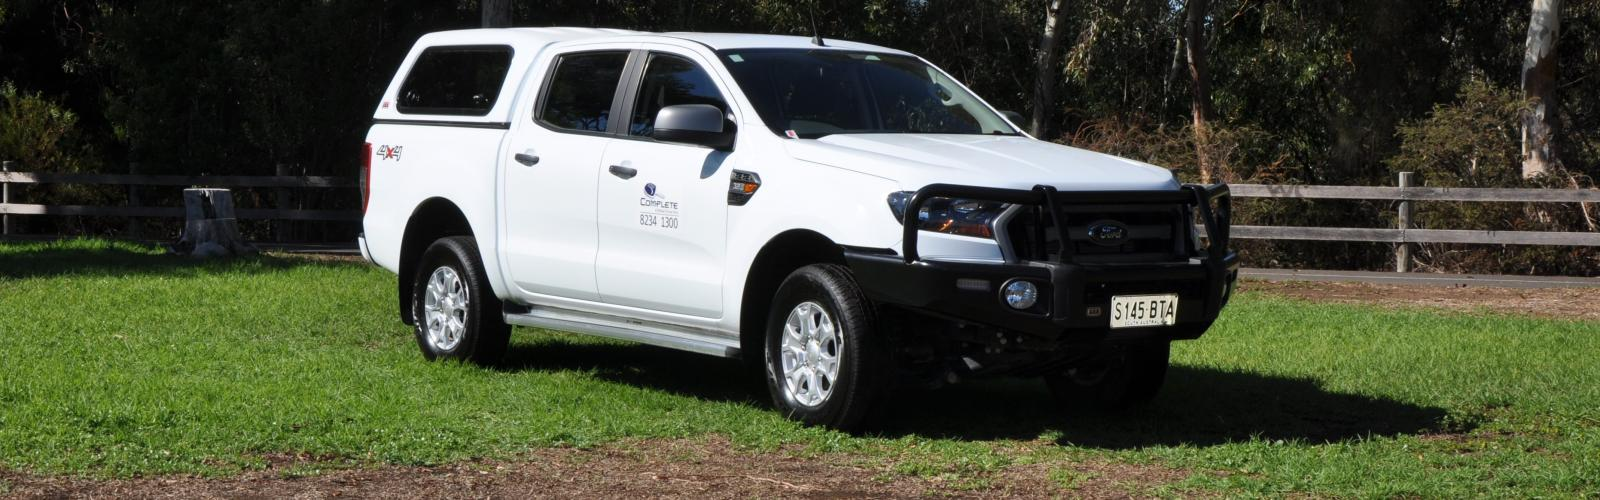 4WD Ford Ranger Dual Cab Canopy 2020